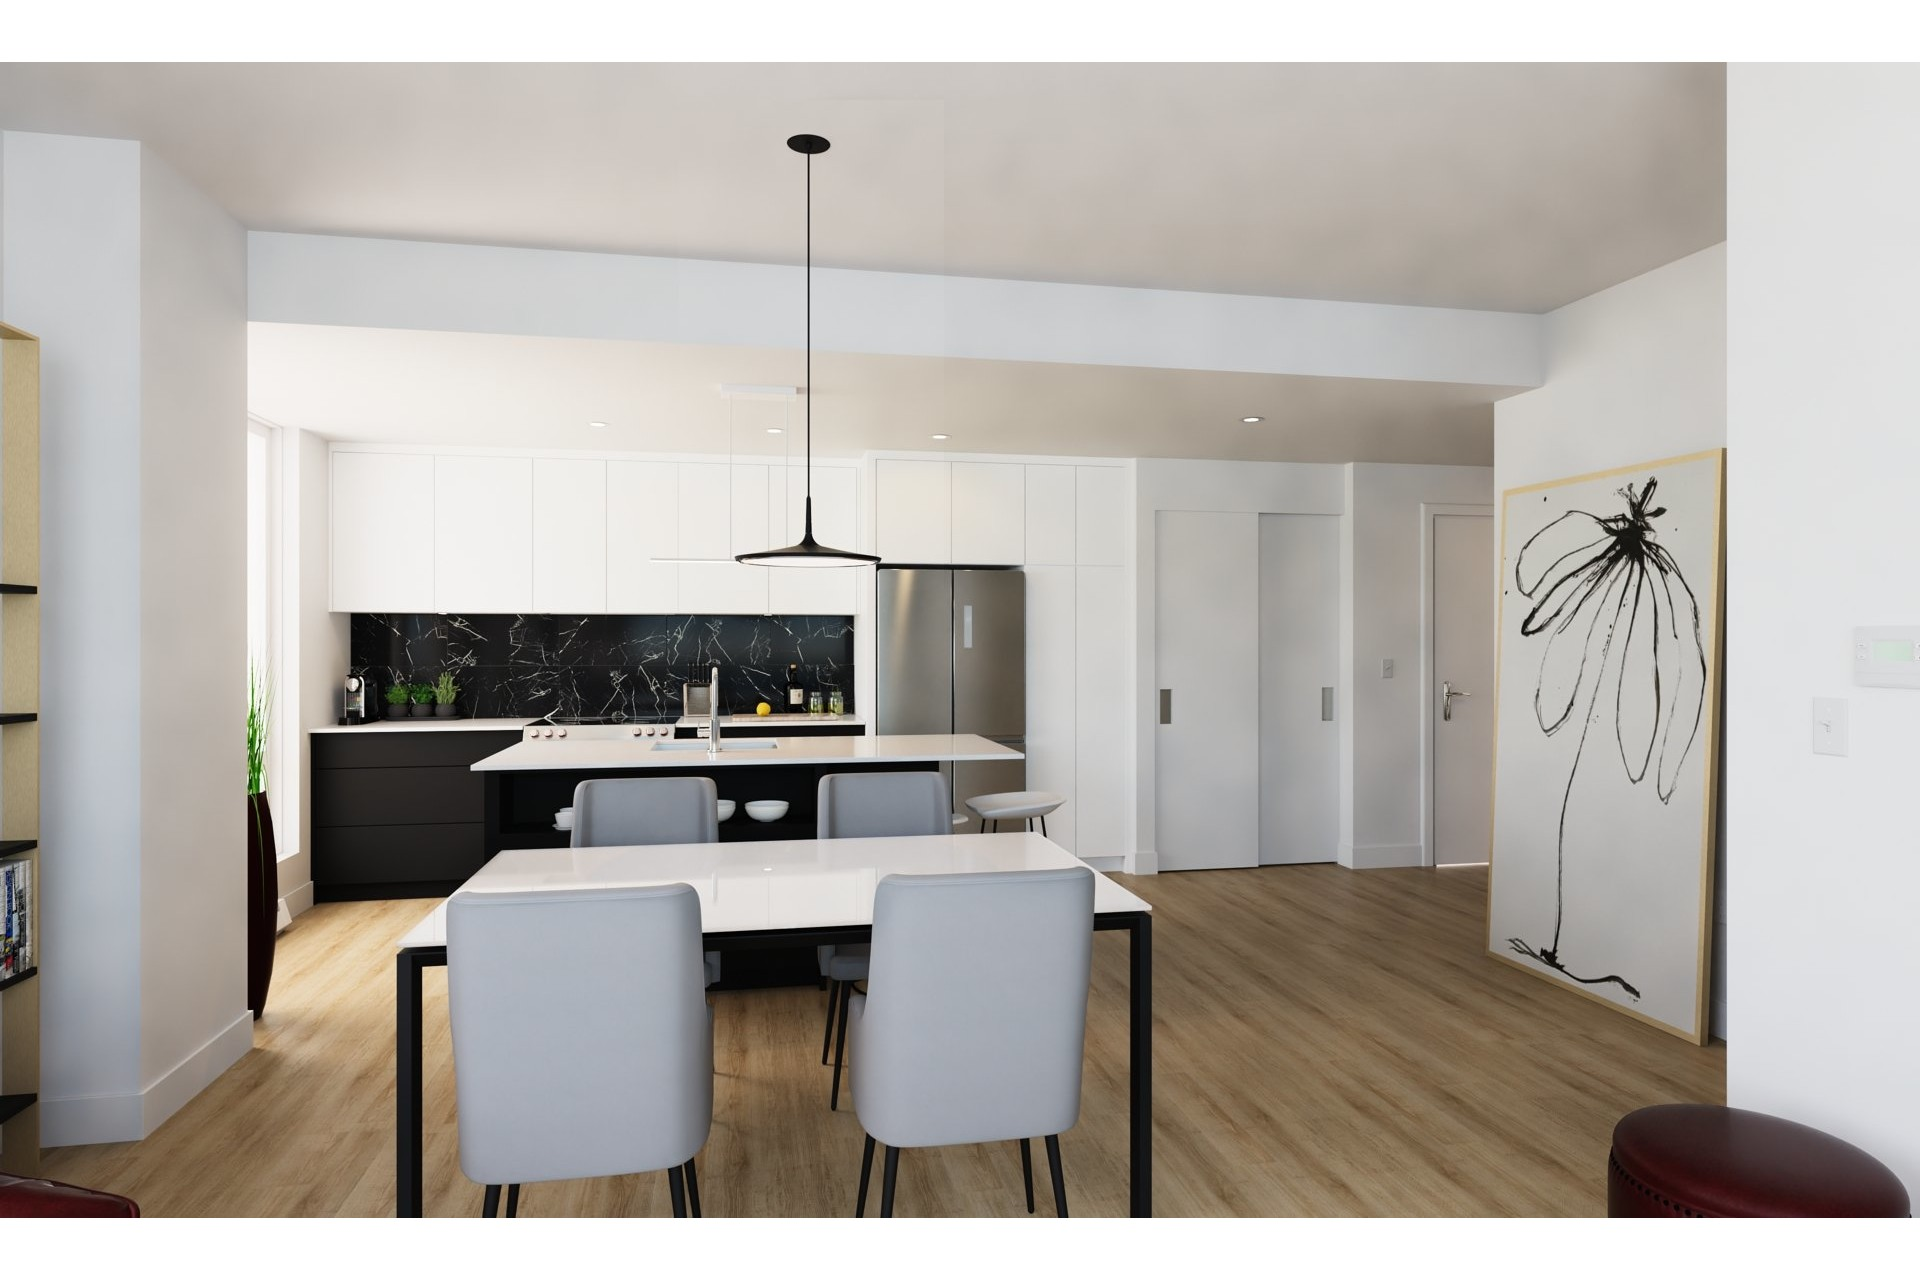 image 5 - Apartment For rent Repentigny Repentigny  - 4 rooms